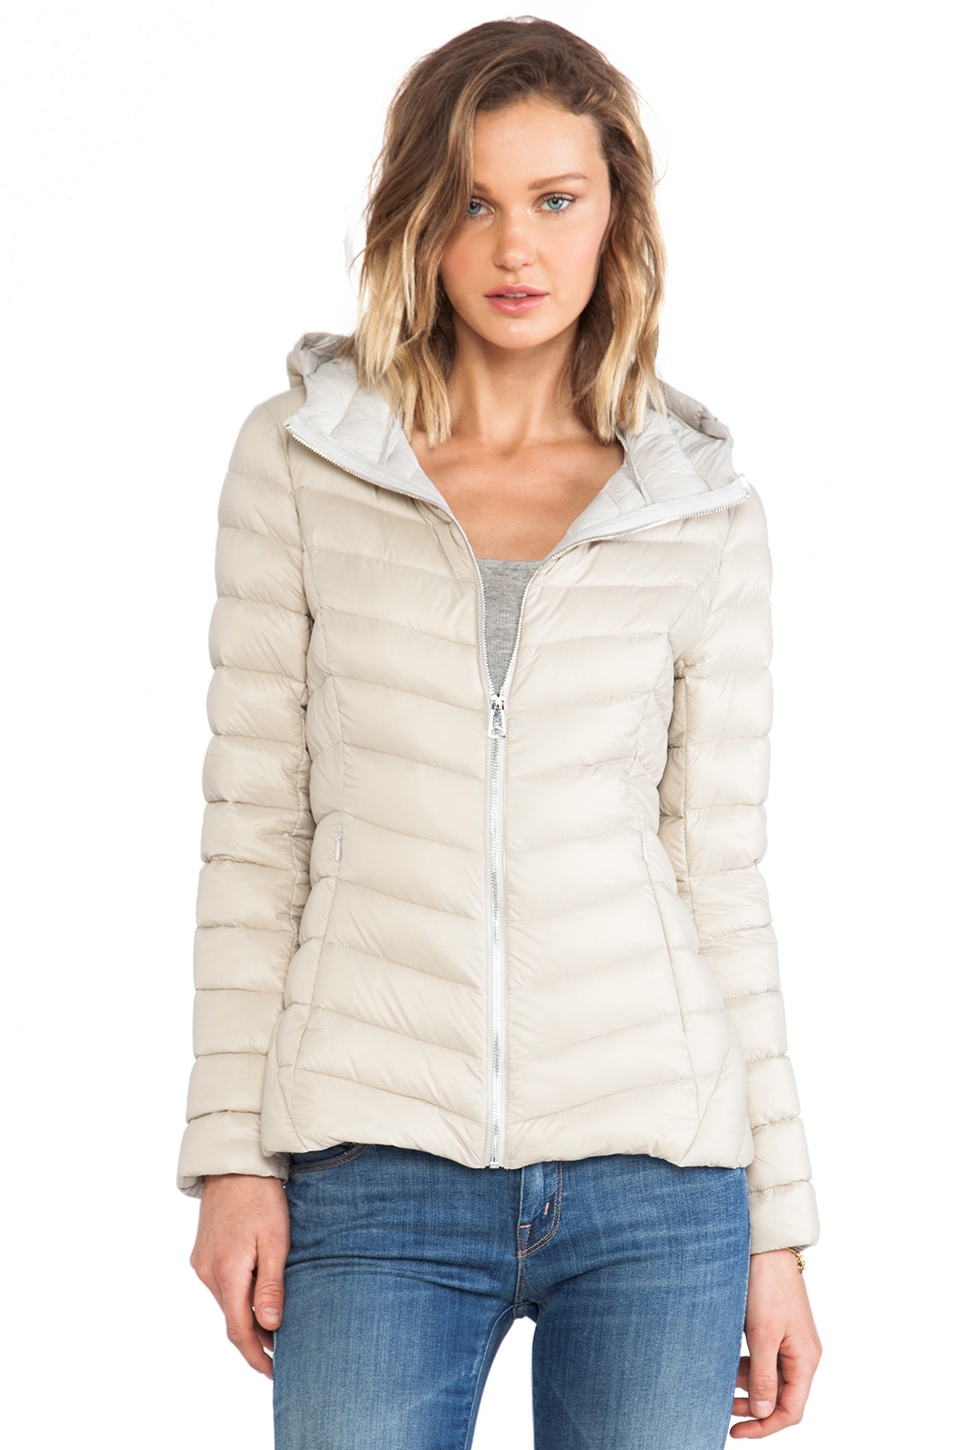 Lightweight Down Coats For Women - Coat Racks